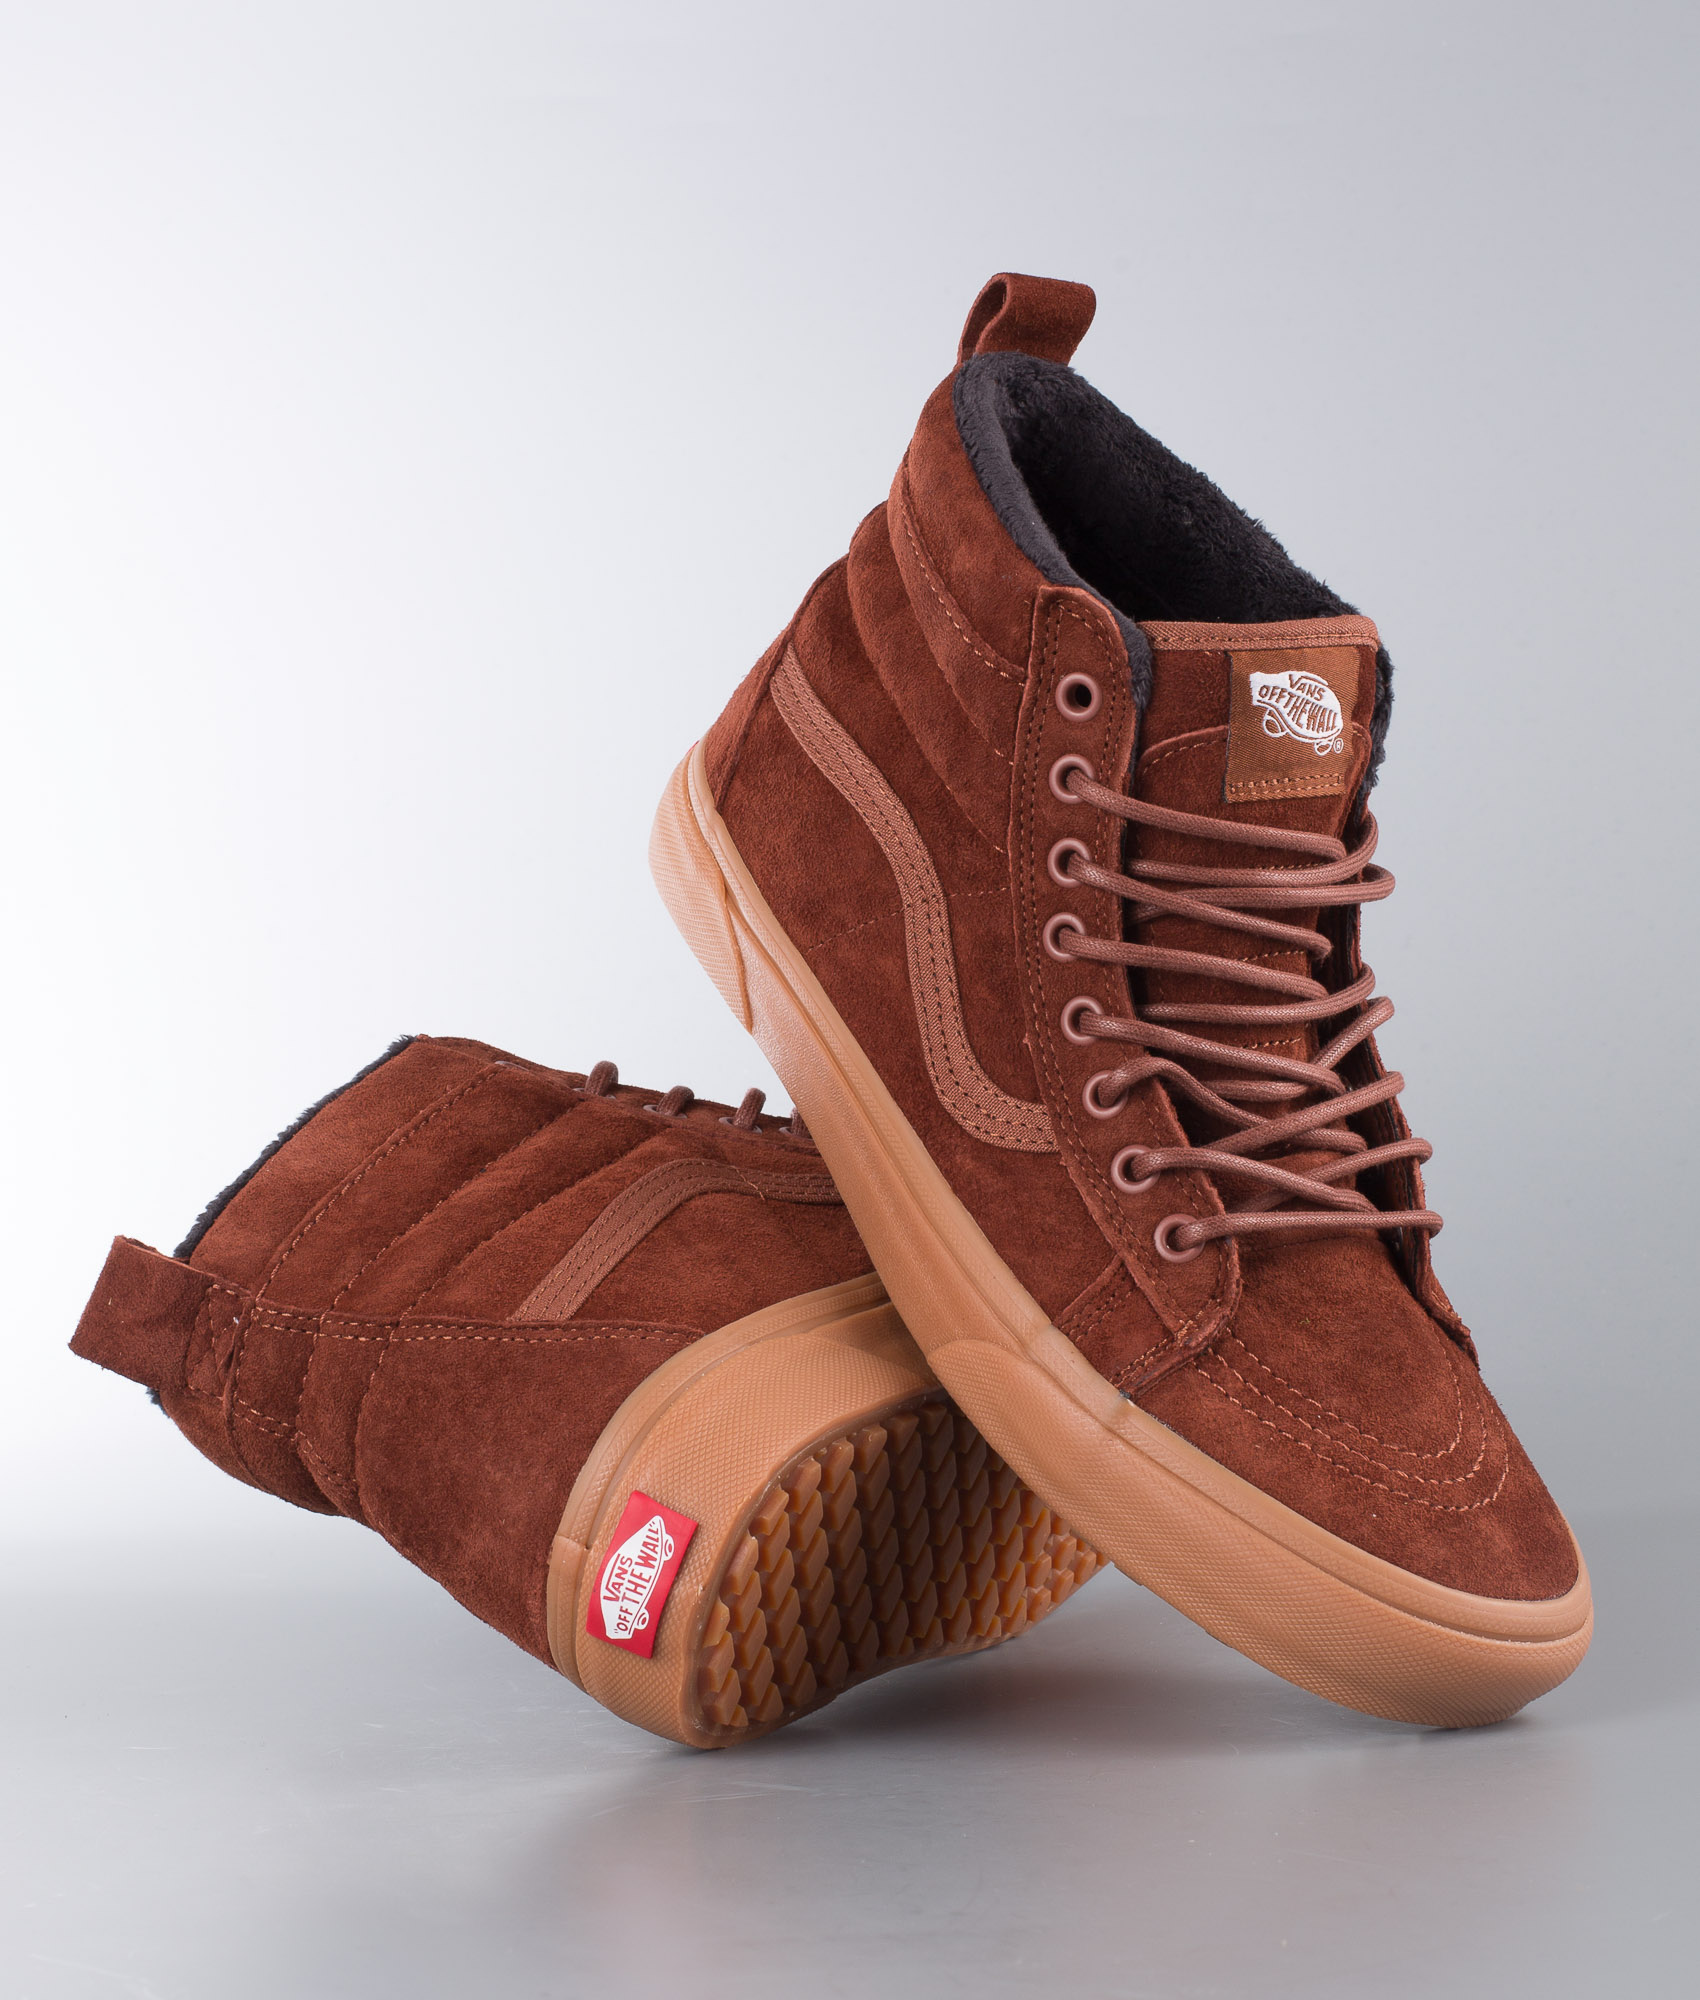 Vans Sk8-Hi Mte Shoes (Mte) Sequoia/Gum